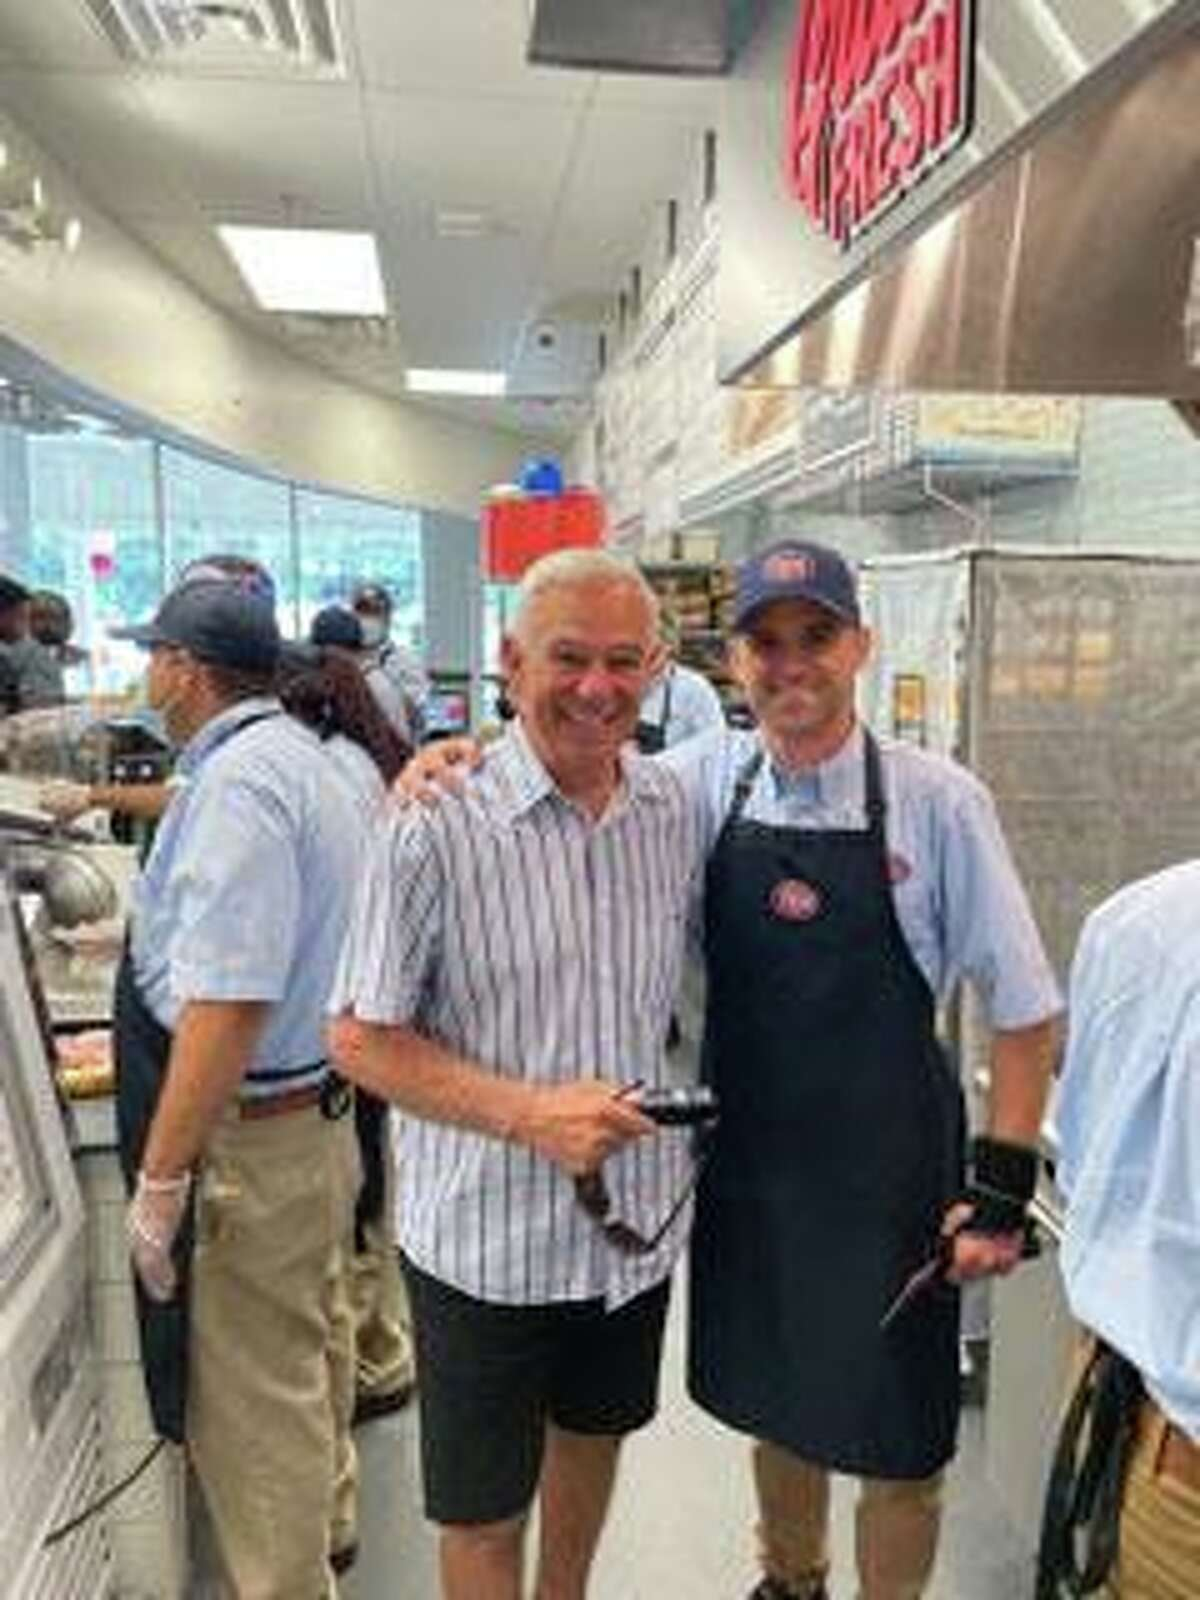 Stamford Mayoral hopeful Bobby Valentine with Joseph Cugine owner of the newly opened Jersey Mike's Subs on High Ridge Road in Stamford. Stamford resident and former MLB great Bobby Valentine, a candidate for mayor of Stamford, stopped by Jersey Mike's Sub Shop at its new location at 1209 High Ridge Road for its opening day festivities on July 21. SKY Mercede of Forever Sweet Bakery in Norwalk supplied the sweet treats for the Jersey Mike's staff at the event. 2021